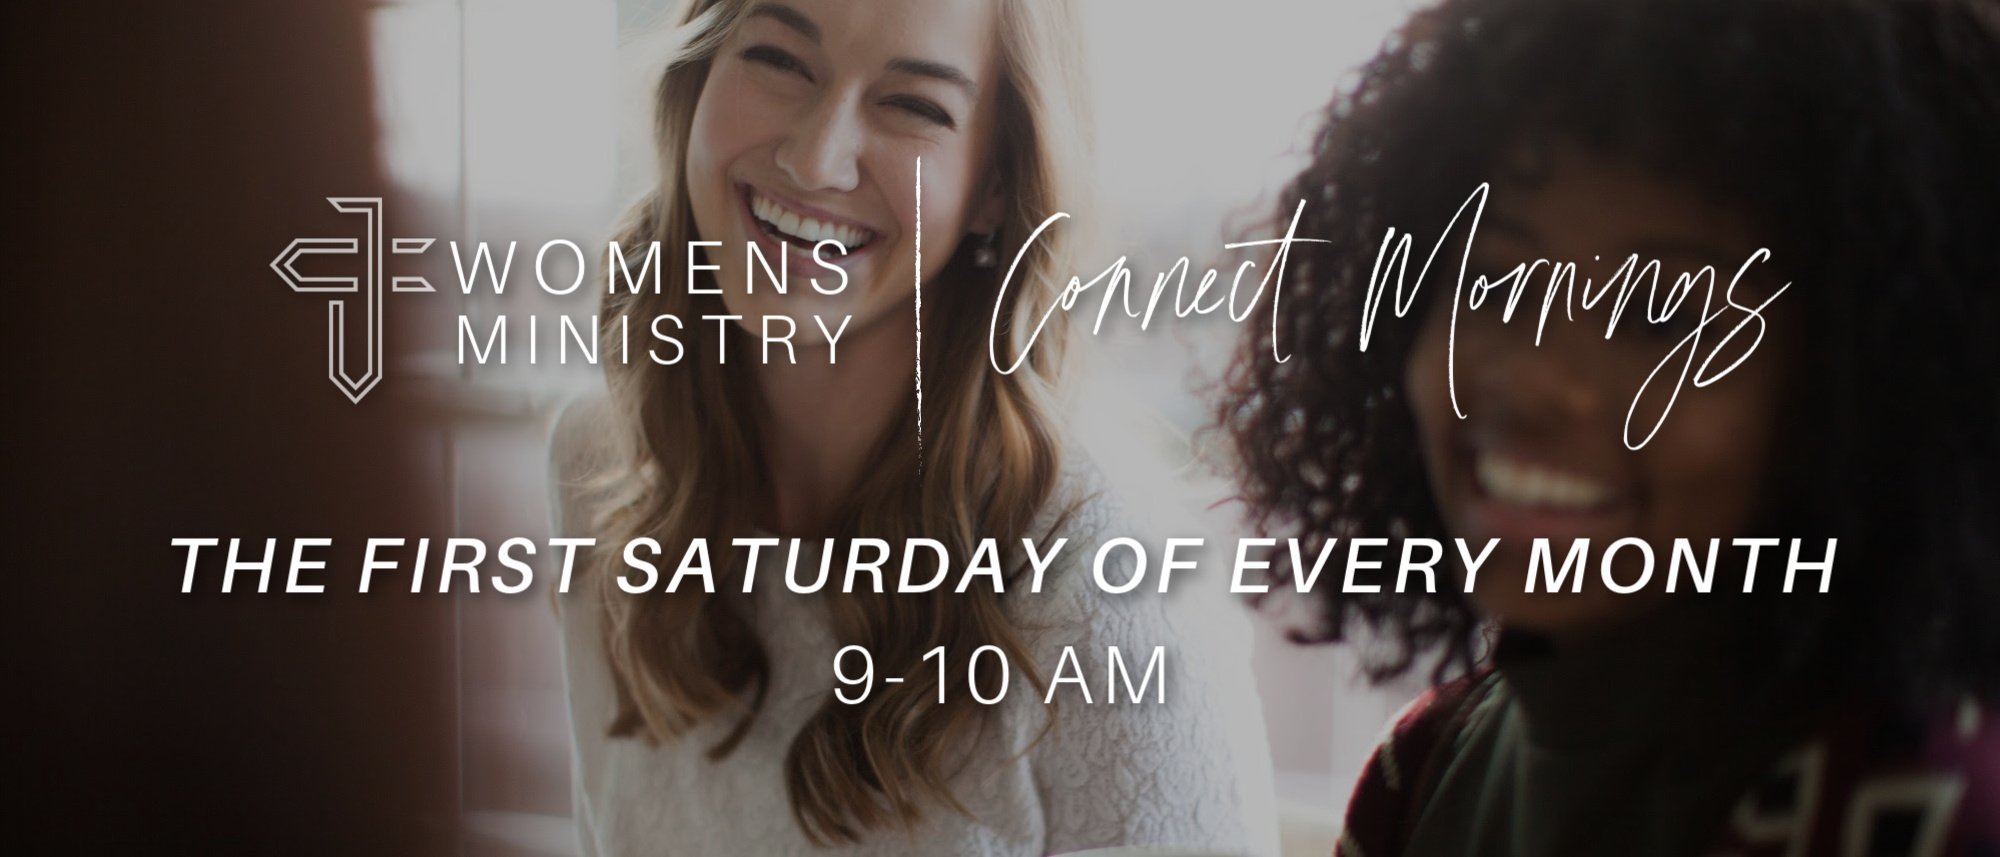 Join us the first Saturday of every month!